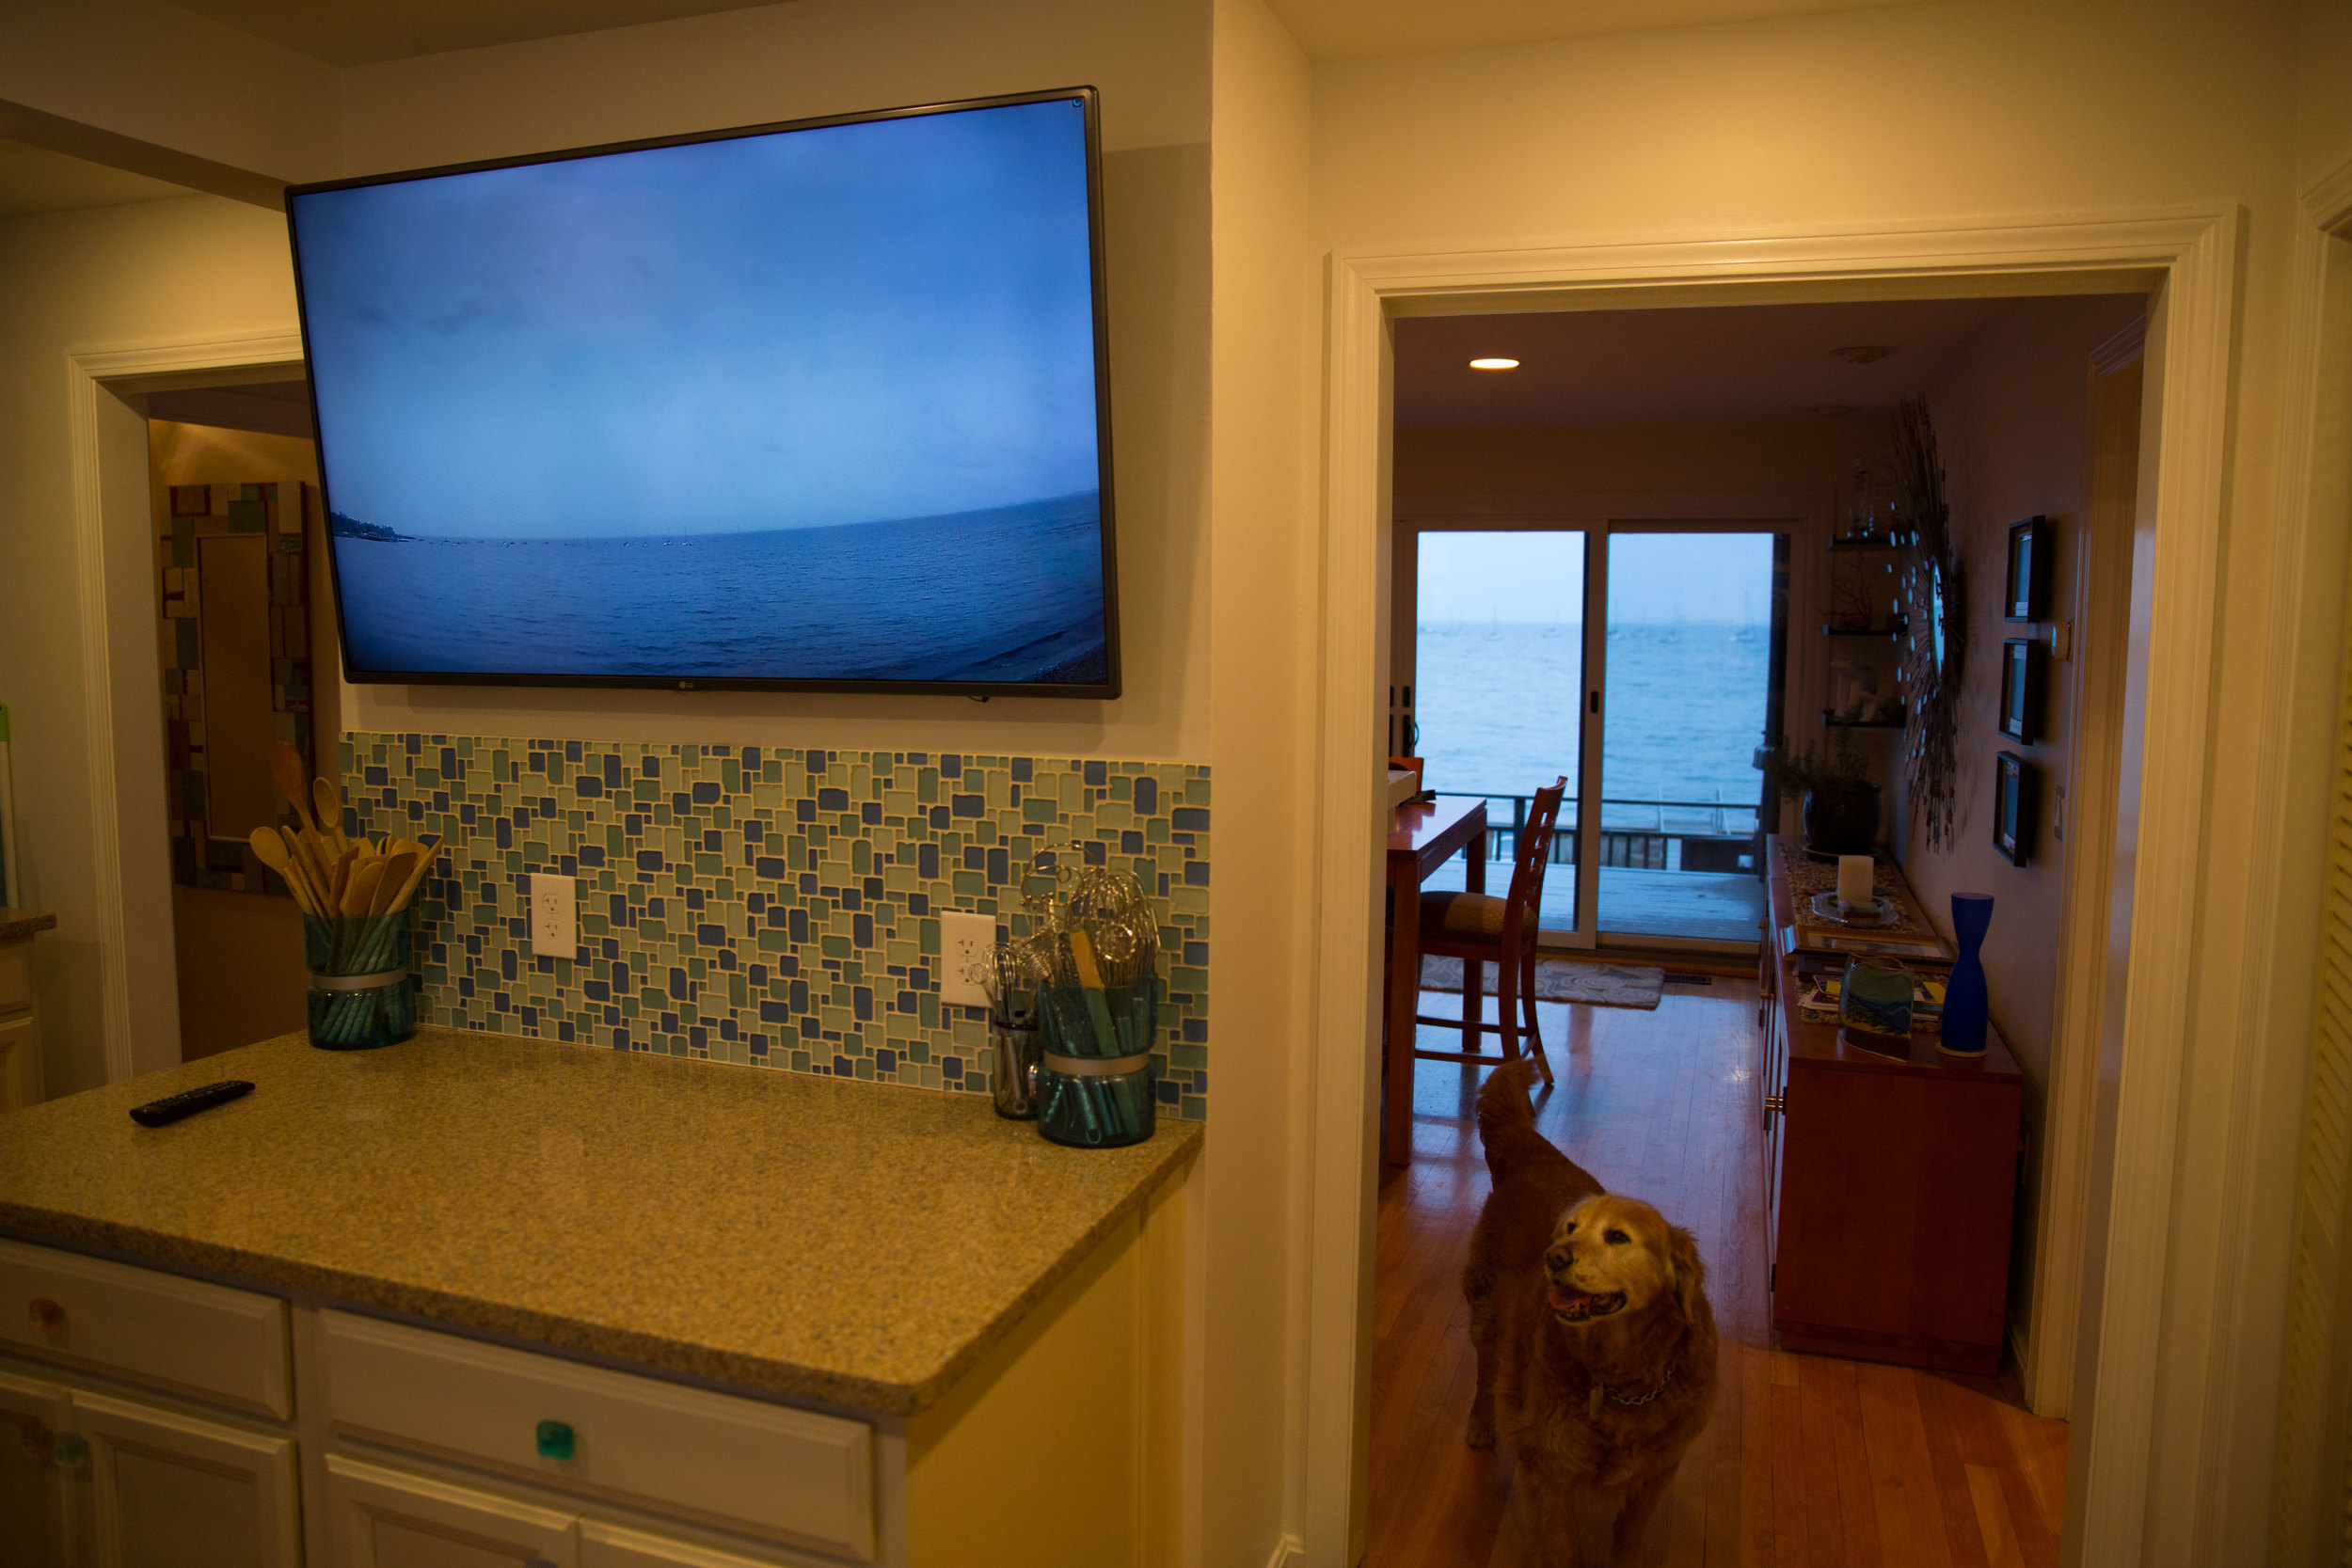 Carangelo at one point had hoped to remove this wall in his kitchen to open up the ocean views, but when that proved to complicated he settled for this HD-TV and security camera set-up.